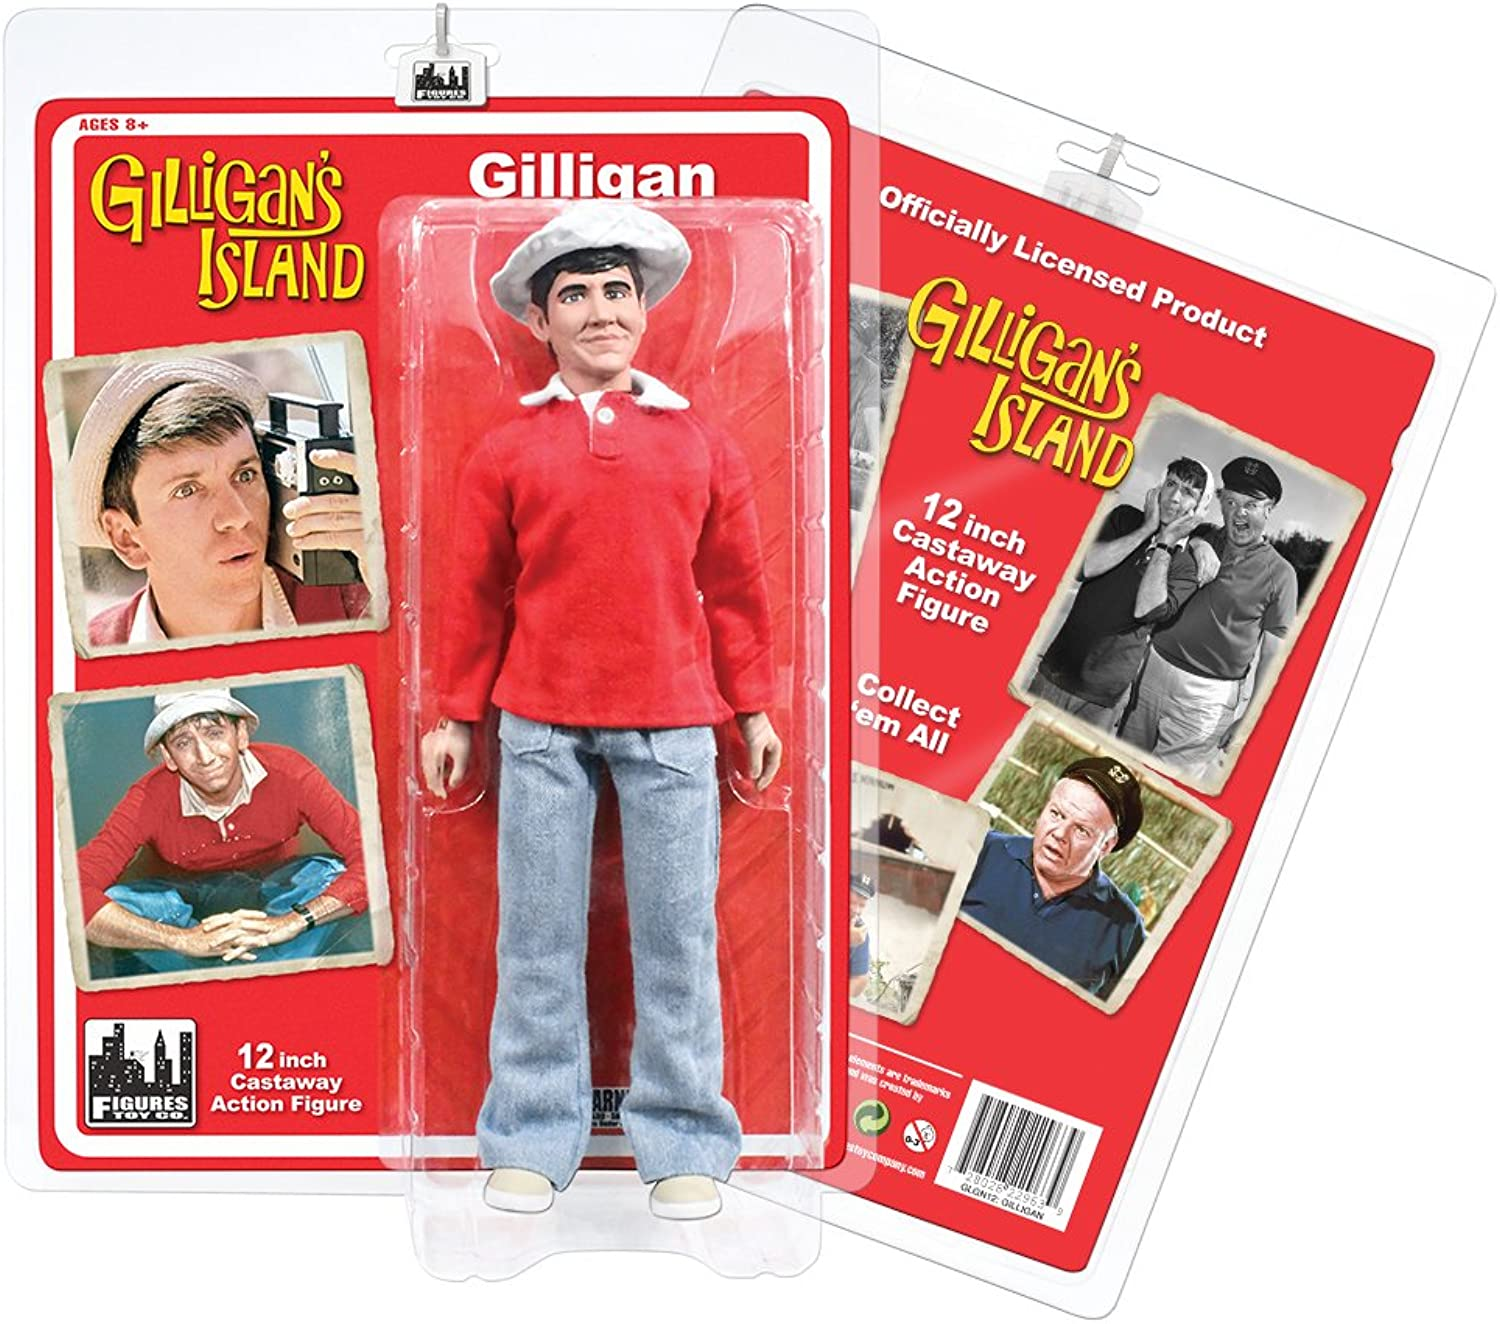 Gilligan's Island Series 1 Gilligan 12 Action Figure by Space 1999 Series 1 Action Figure